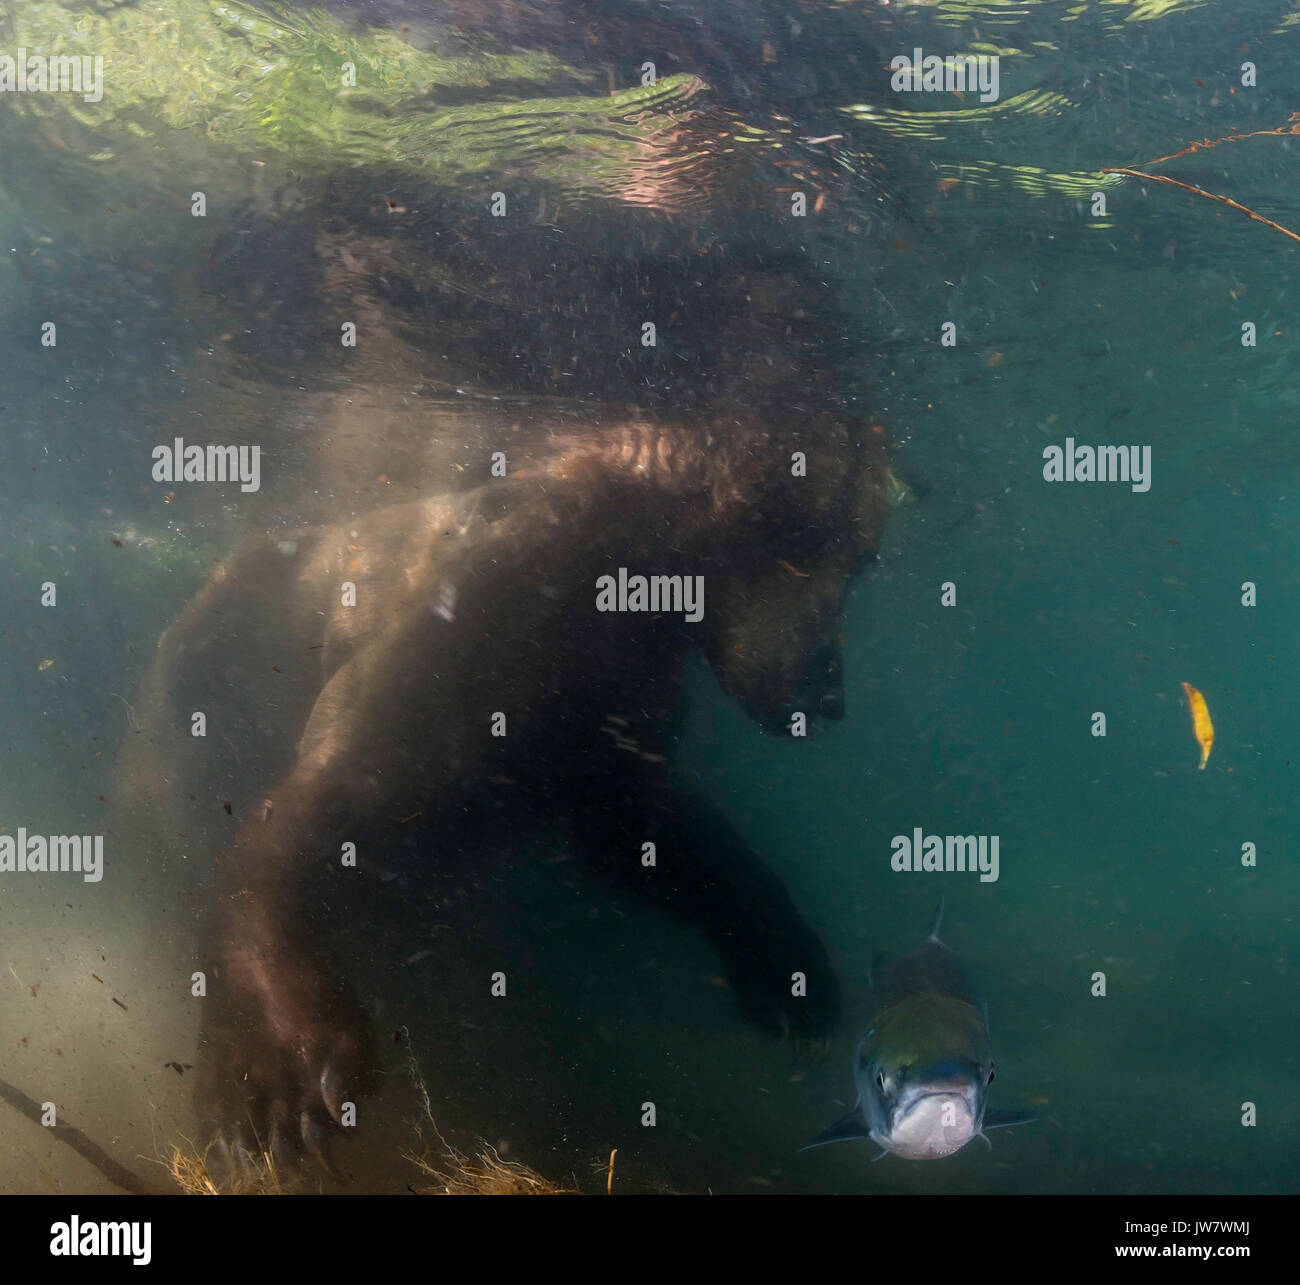 Underwater view of a brown bear trying to catch sockeye salmon as the migrate up the Ozernaya River to spawn, Kamchatka, Russia. - Stock Image